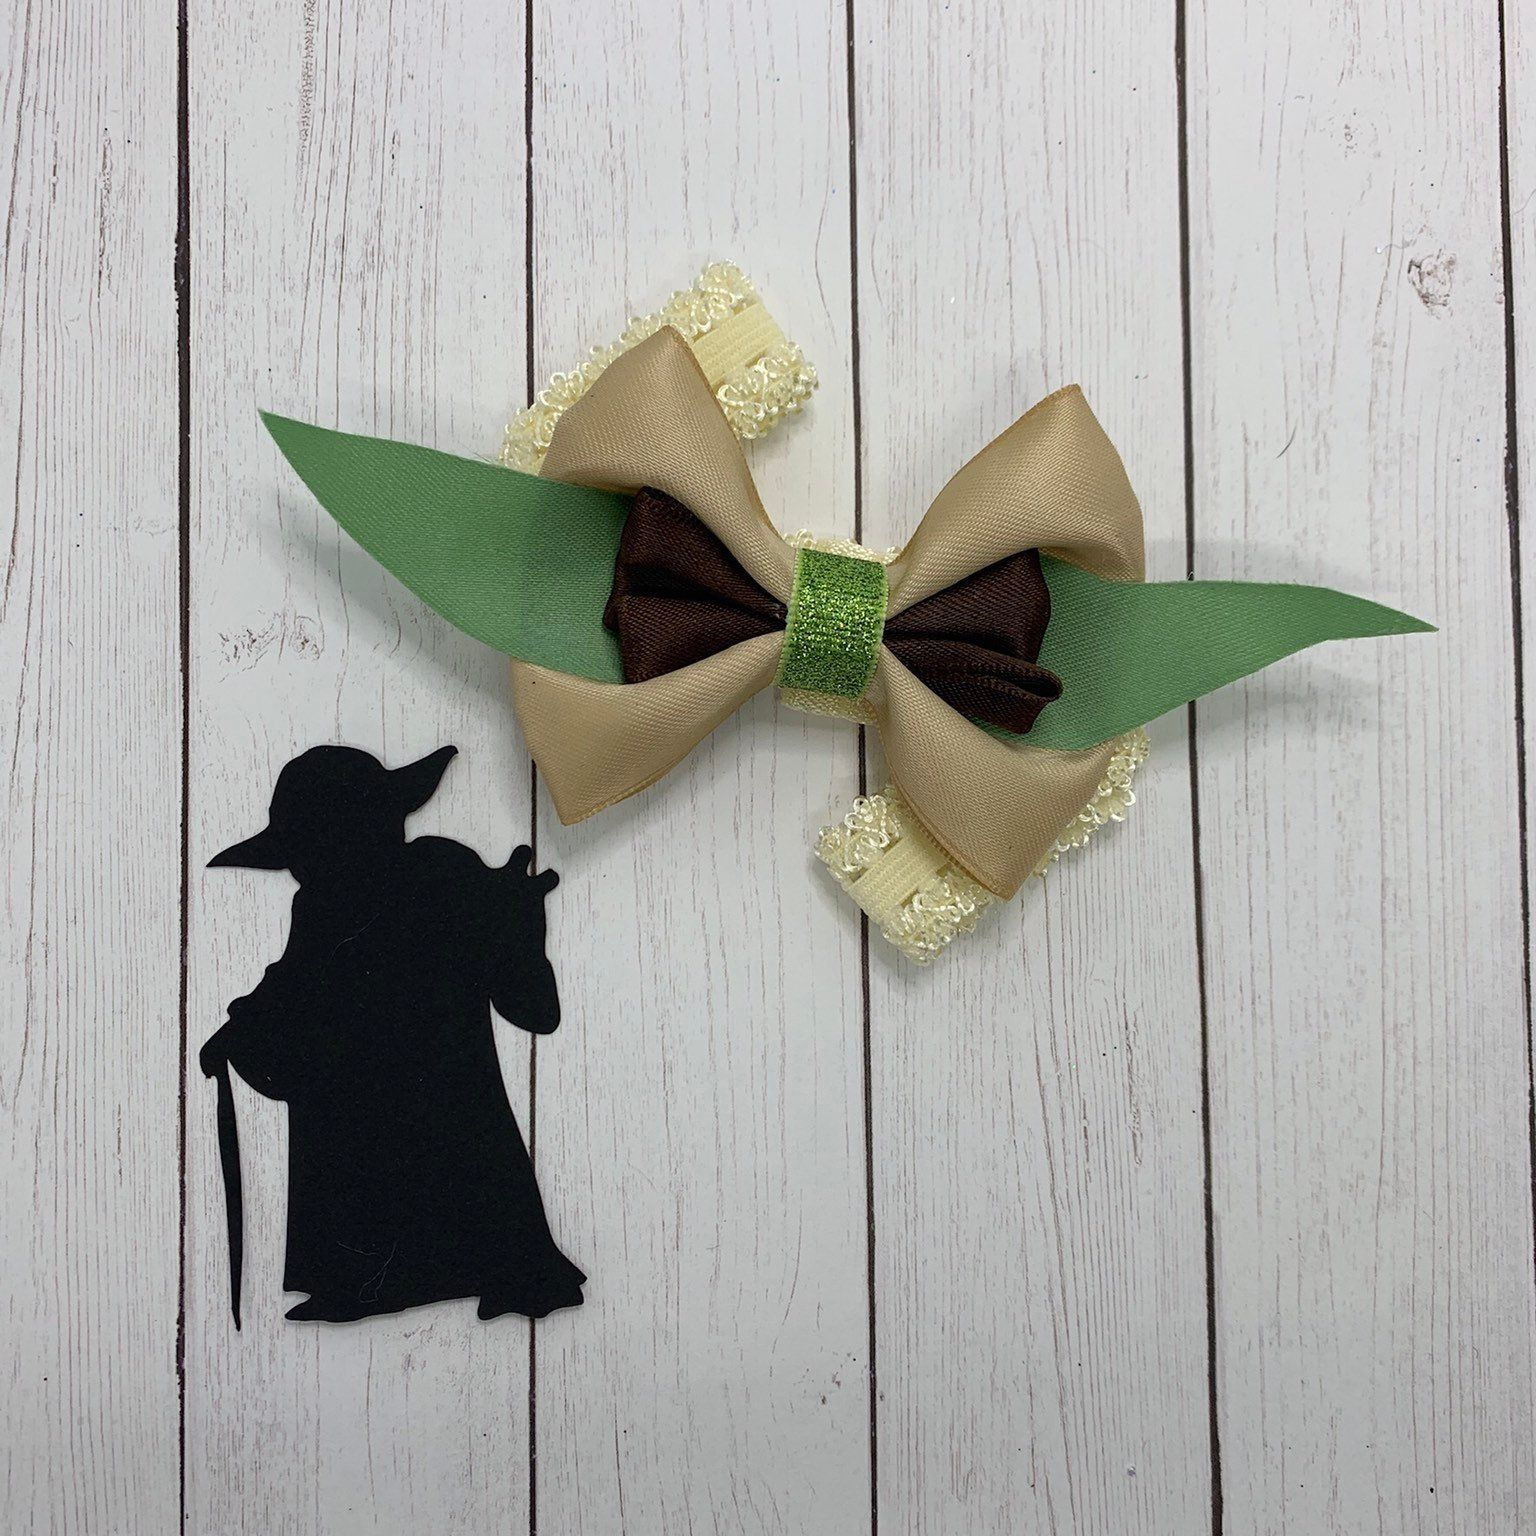 Star Wars Inspired Hairbow Baby Yoda inspired Hairbow Boutique style hairbow